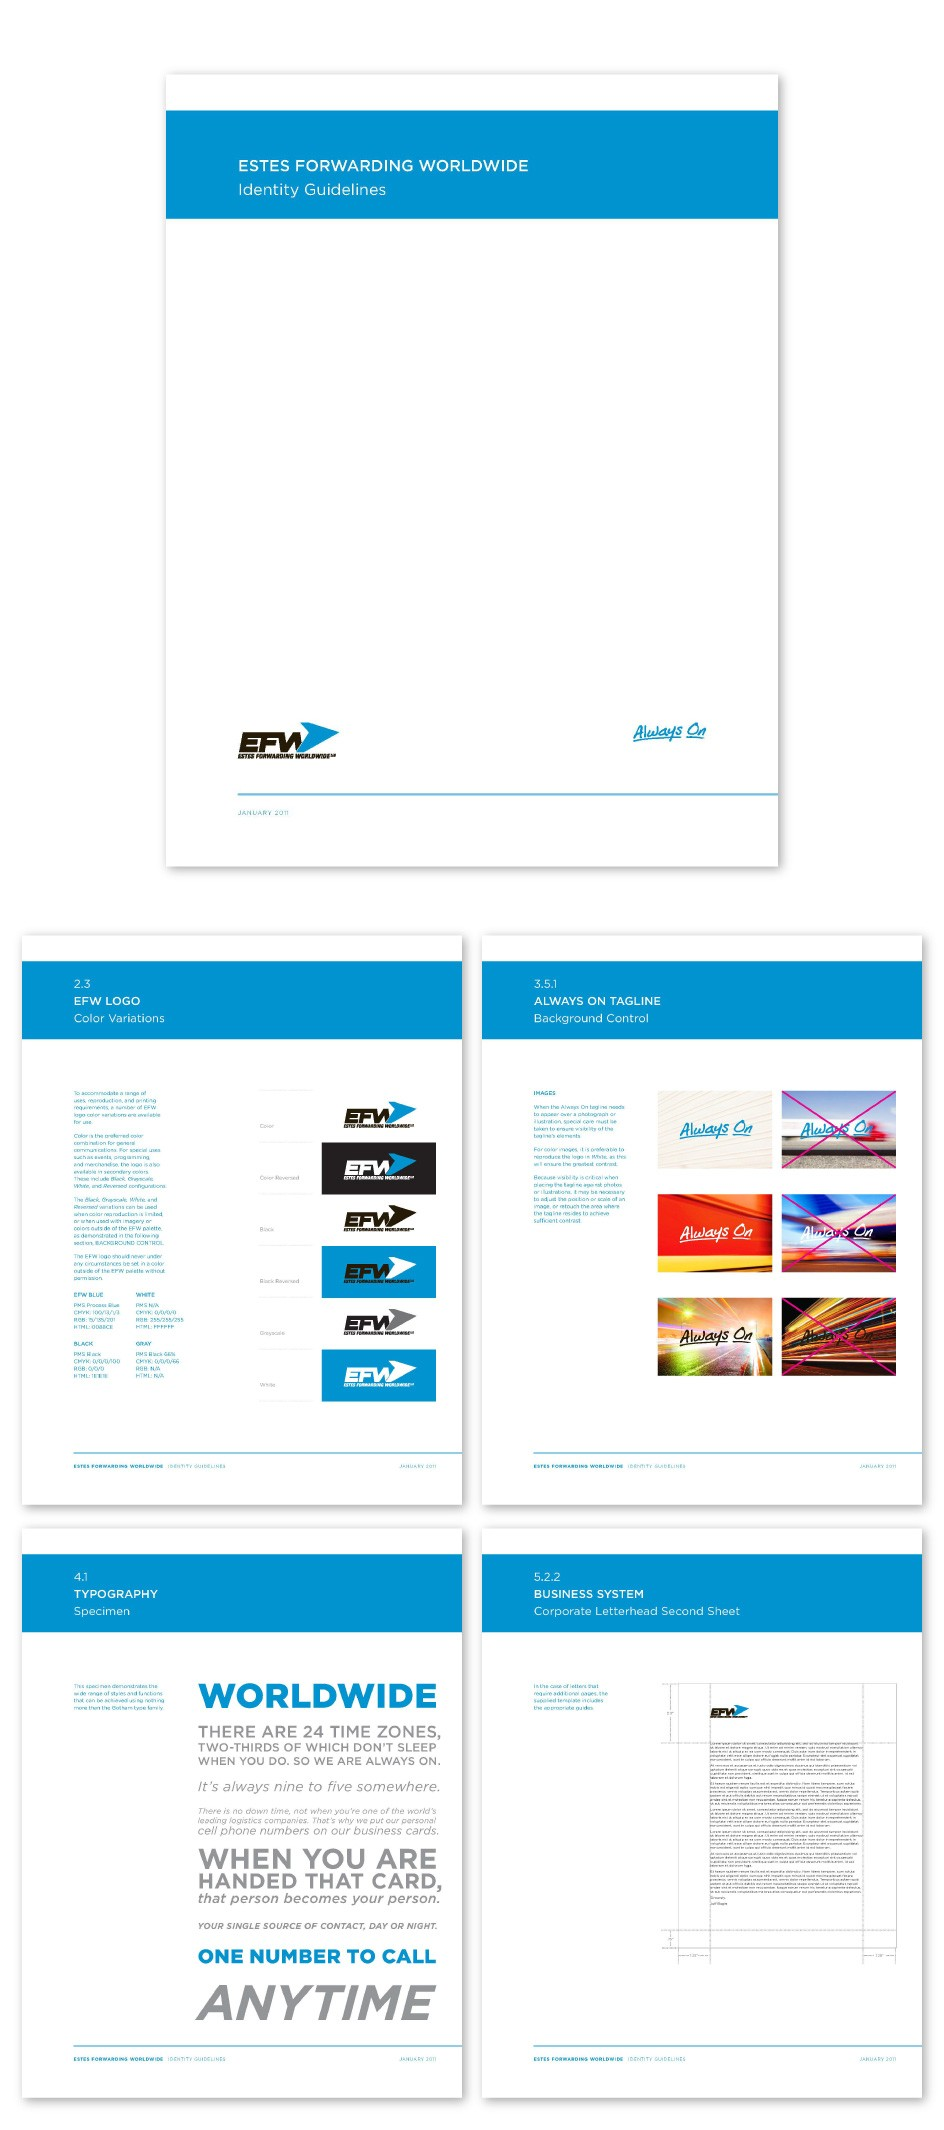 EFW-Estes-Forwarding-Worldwide-Global-Freight-Logistics-Re-Brand-Branding-Logo-Identity-UPS-FEDEX-Old-Dominion-Delivery-Train-Truck-Ship-Shipping-Identity-Guidelines-Brand-Standards-Manual